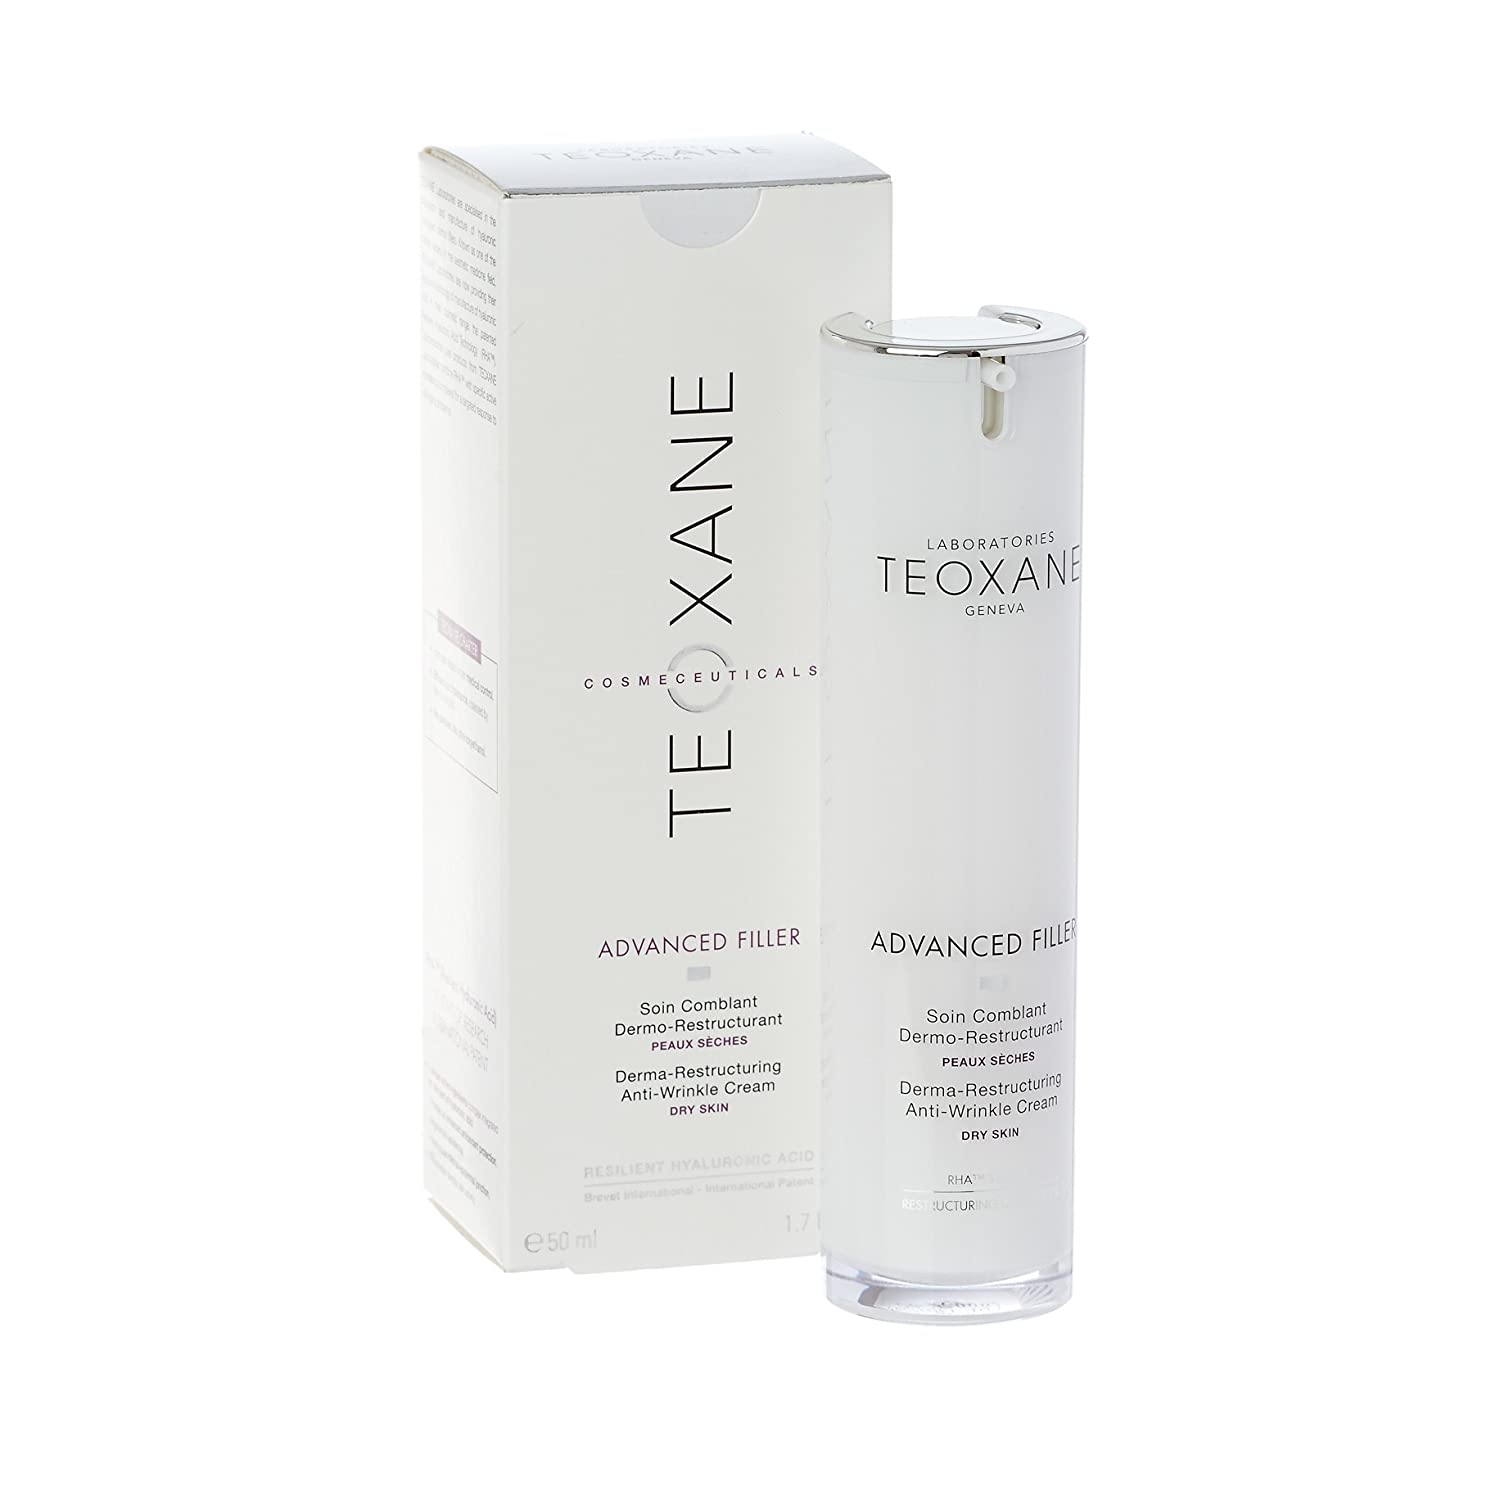 TEOSYAL COSMECEUTICALS ADVANCED FILLER PEAUX SECHES A TRES SECHES 50 ML by Teoxane Teoxane Cosmeceuticals 6002299